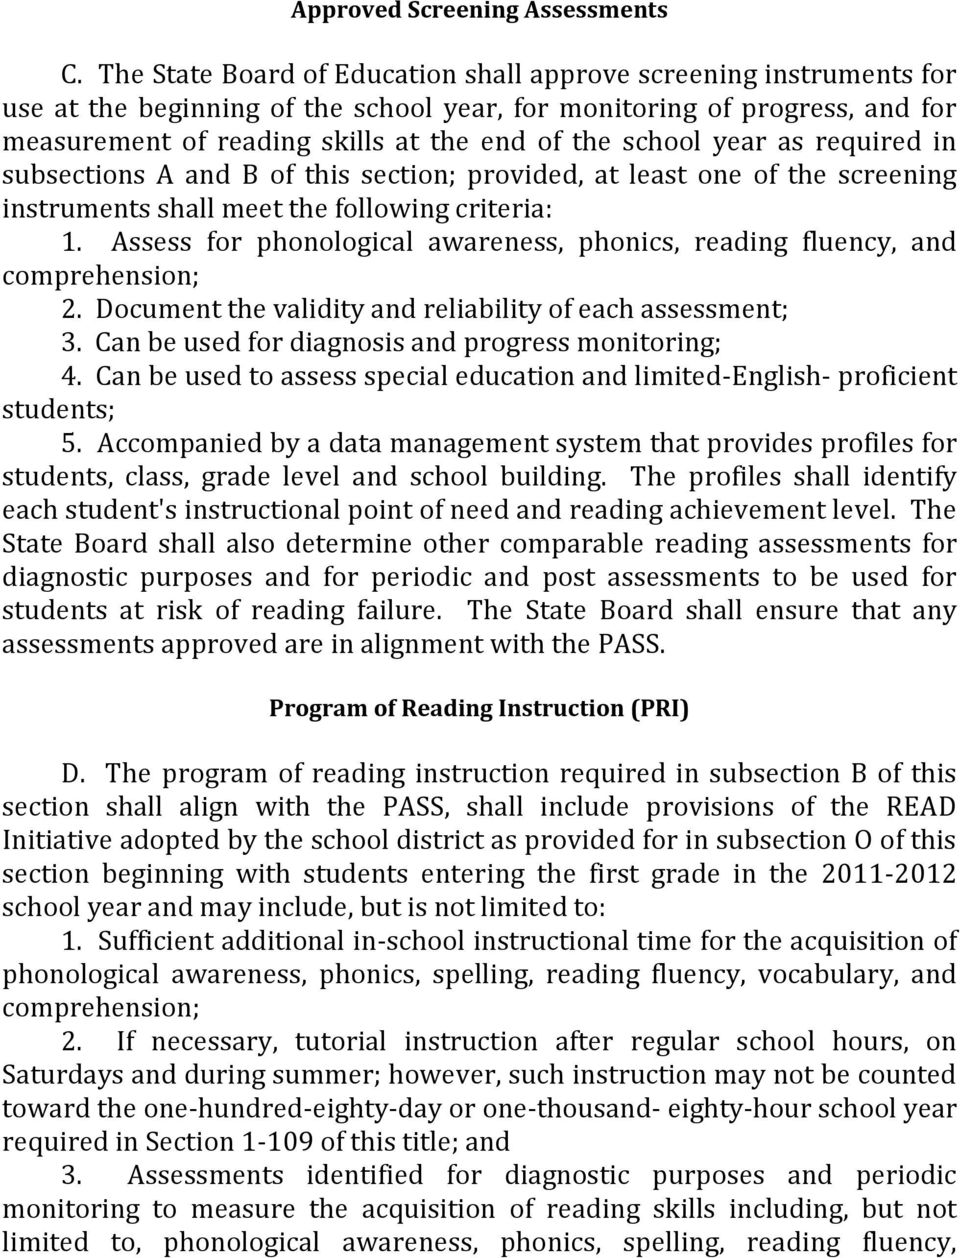 school year as required in subsections A and B of this section; provided, at least one of the screening instruments shall meet the following criteria: 1.